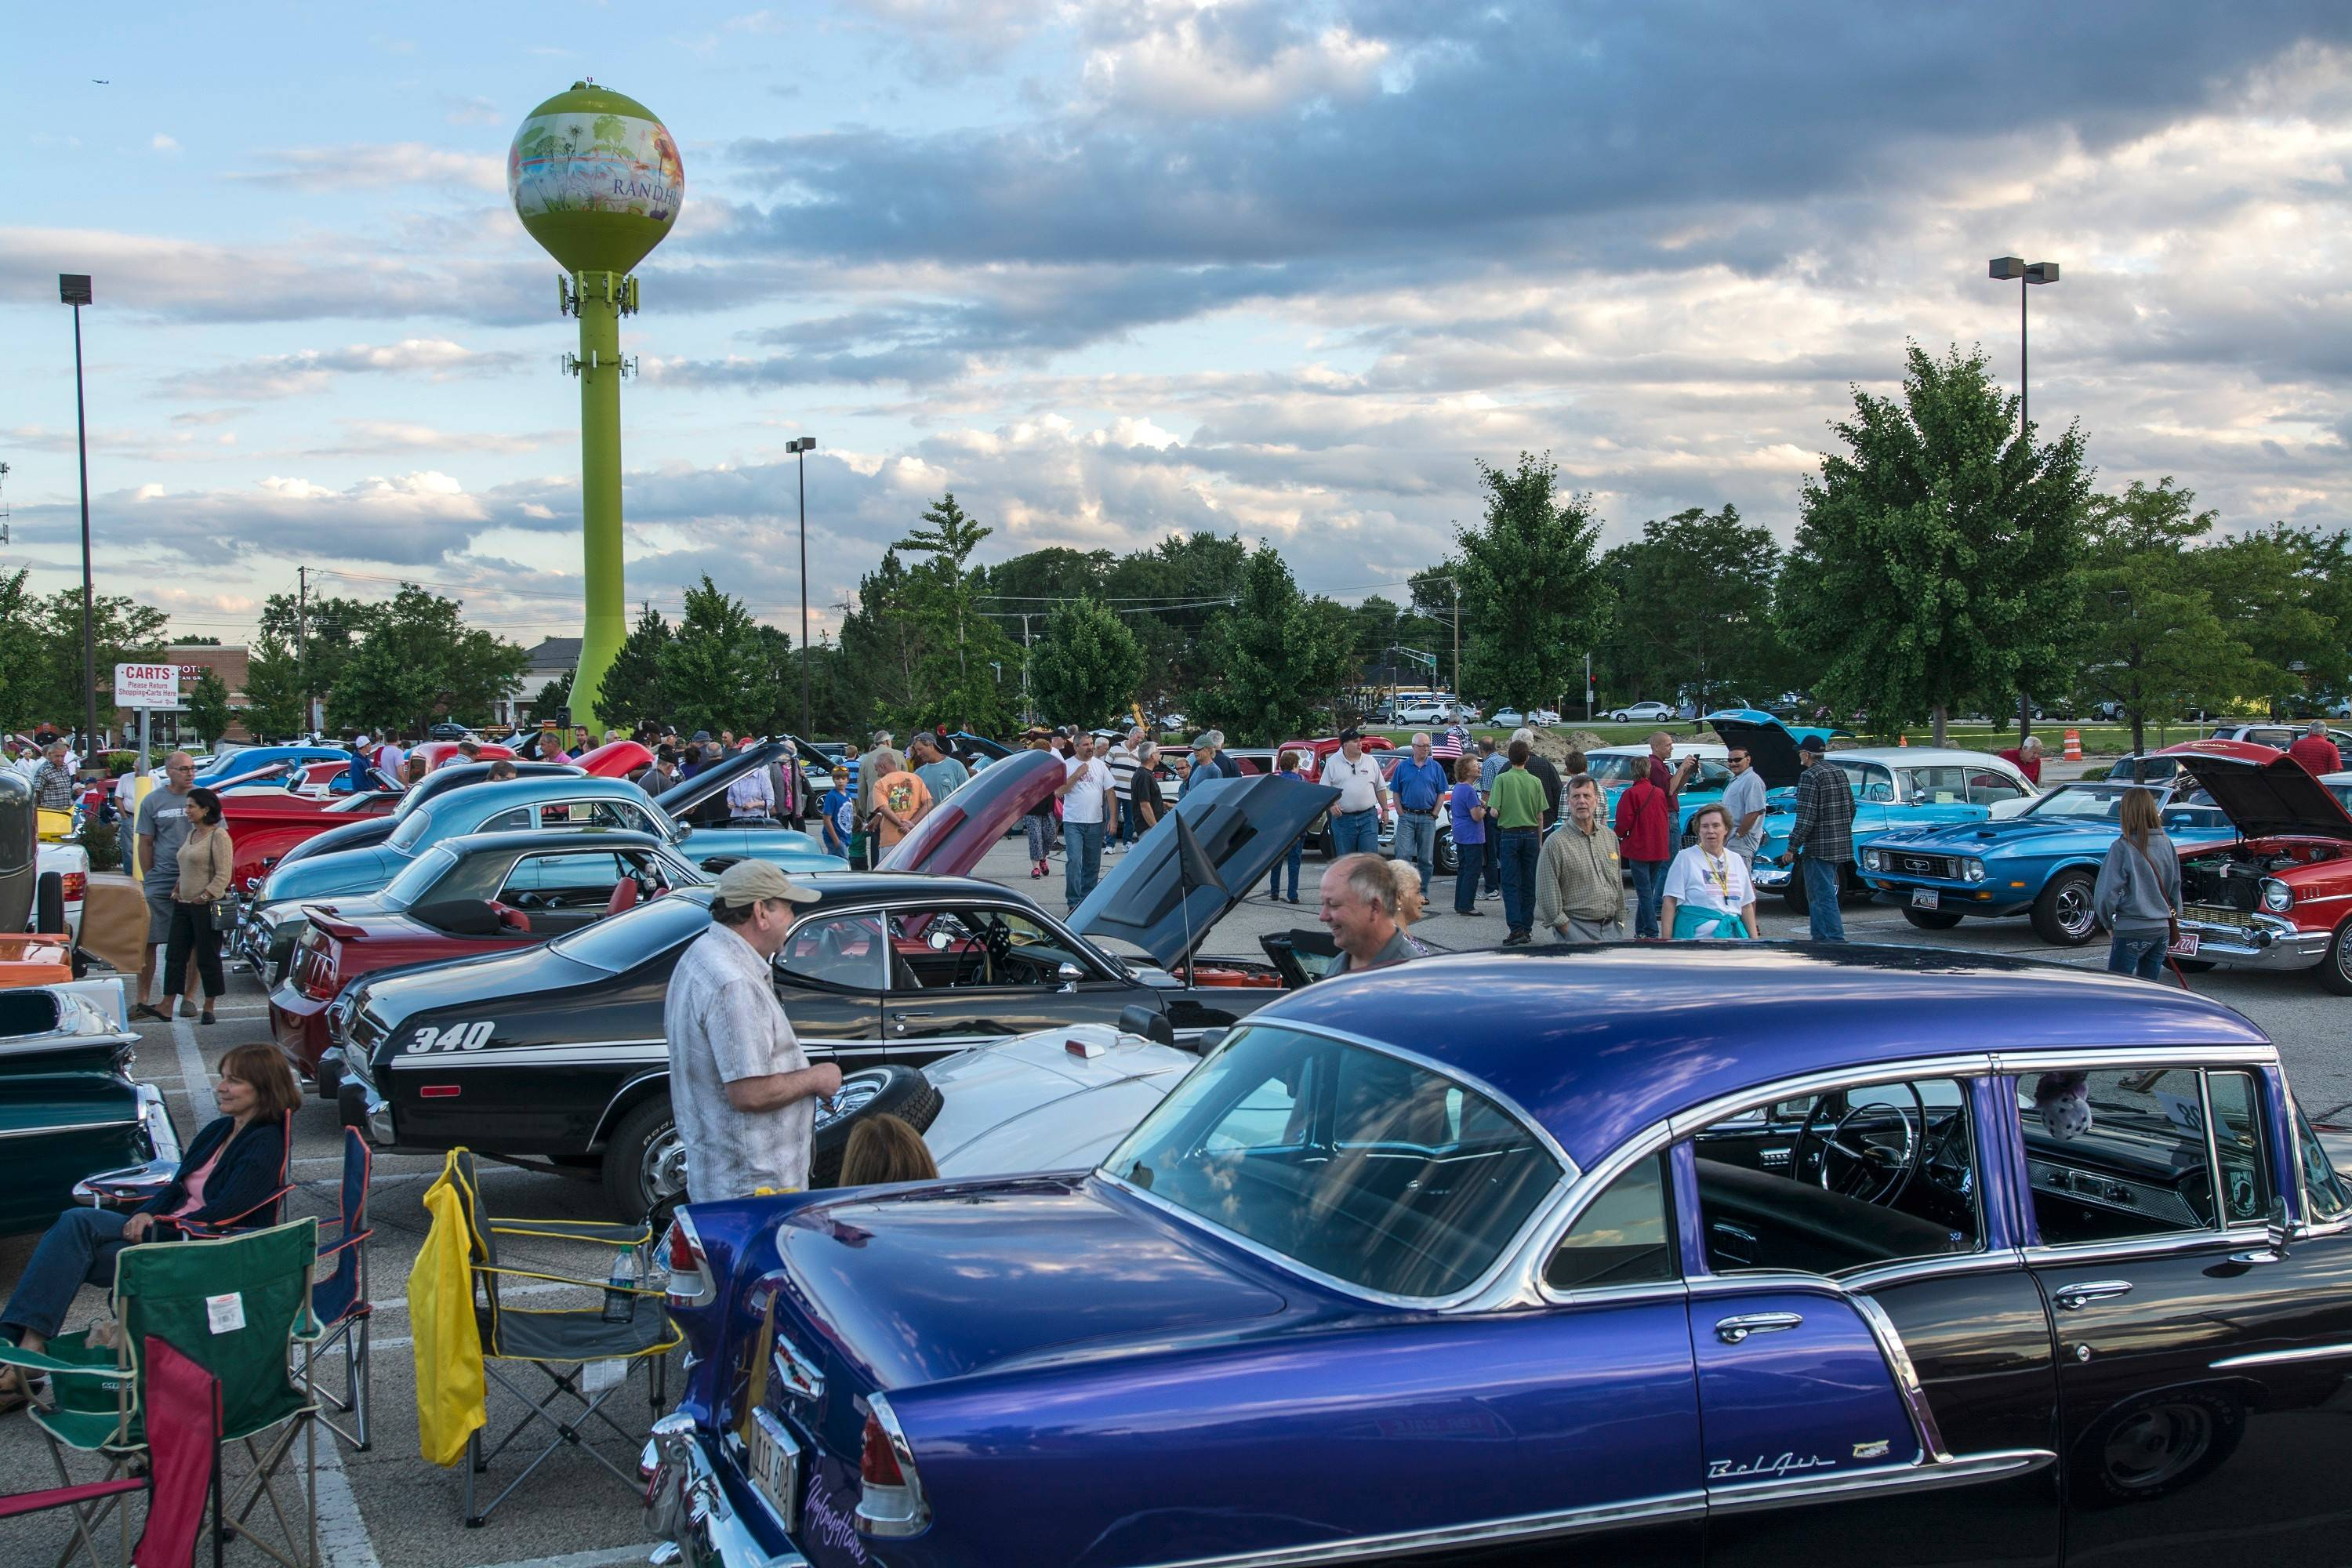 More than 230 vehicles and their owners attended Wednesday's Randhurst Village Cruise Night in Mount Prospect.